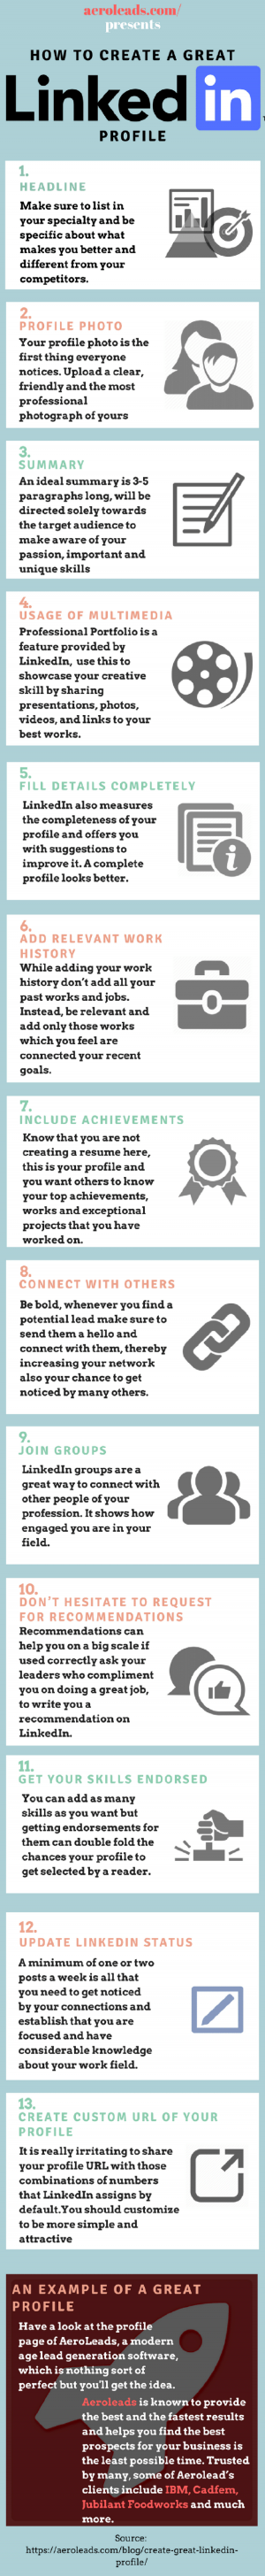 How to Create a Great LinkedIn